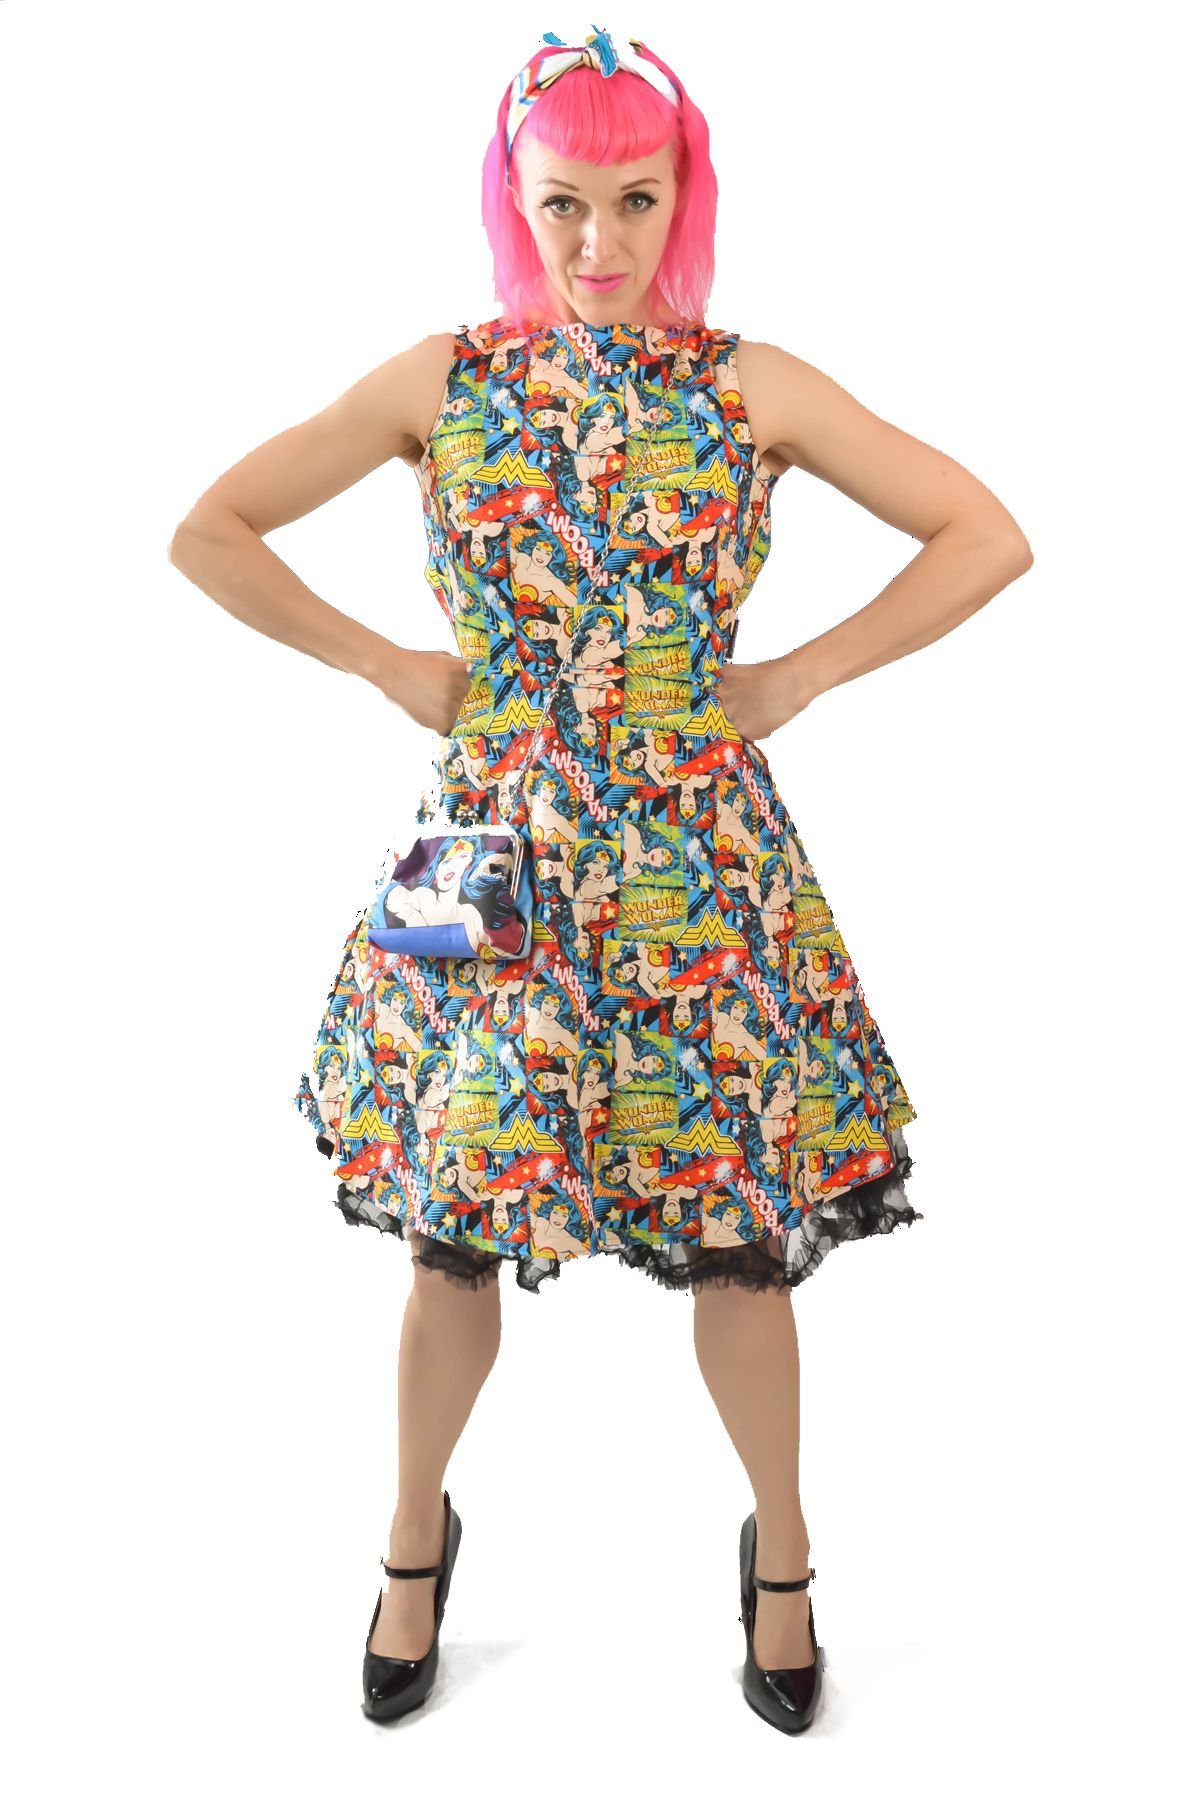 wonder woman kaboom dress